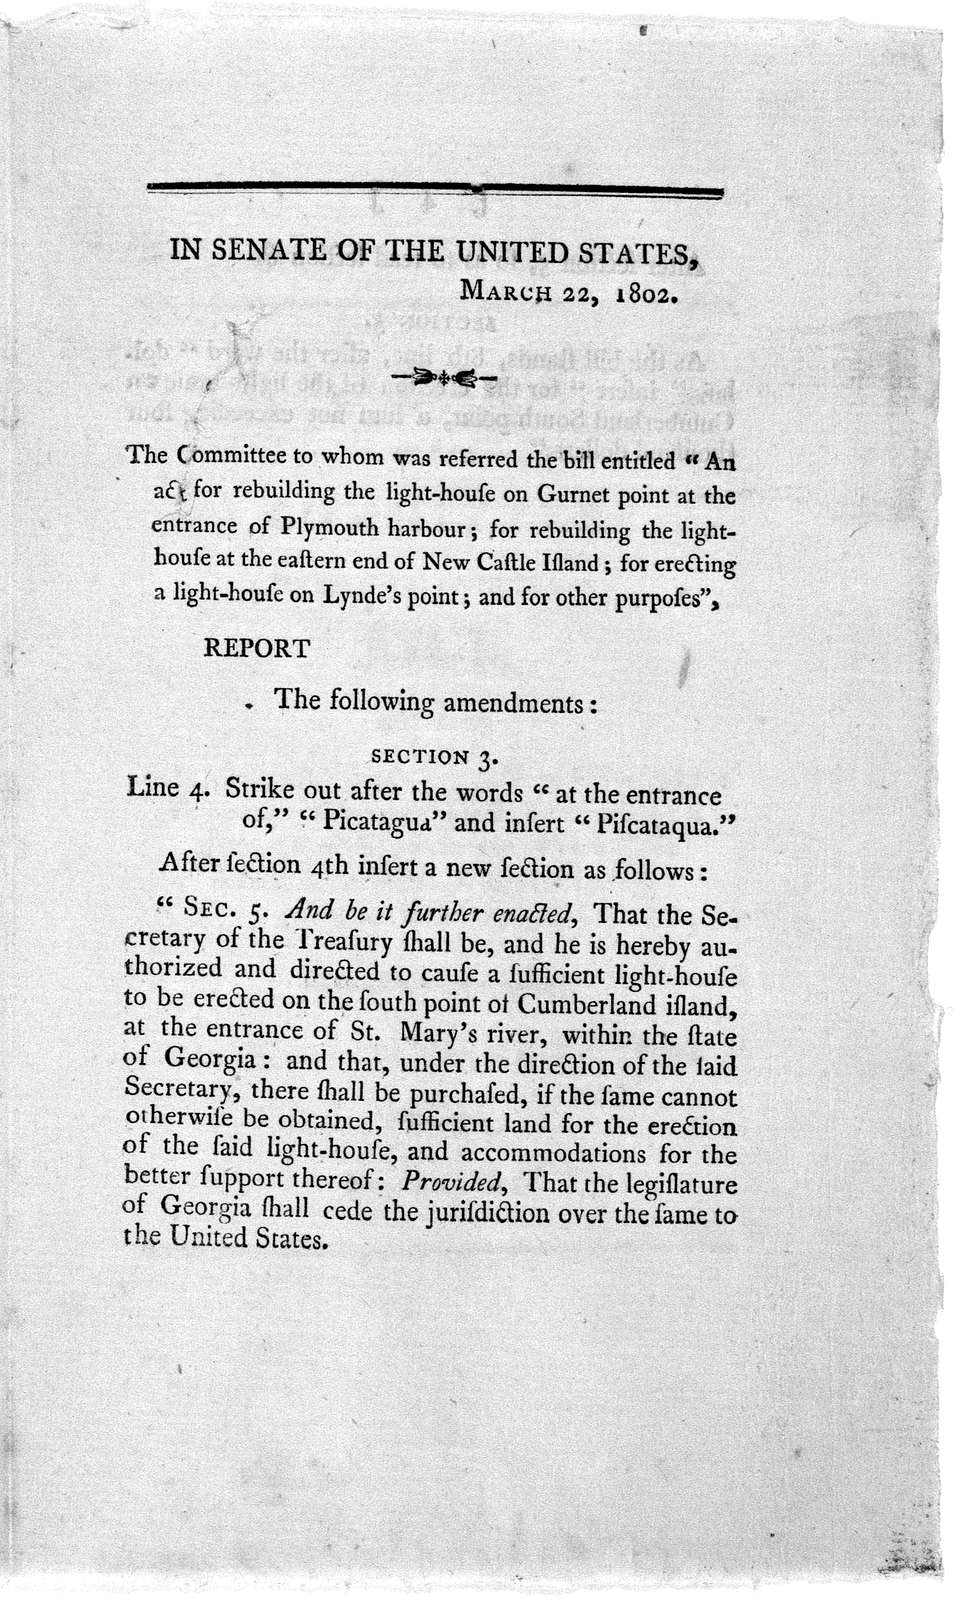 """Report of the committee to whom was referred the bill, entitled """"An act for rebuilding the light-house on Gurnet point at the entrance of Plymouth harbour; for rebuilding the light-house at the eastern and of New-Castle Island; for erecting a li"""